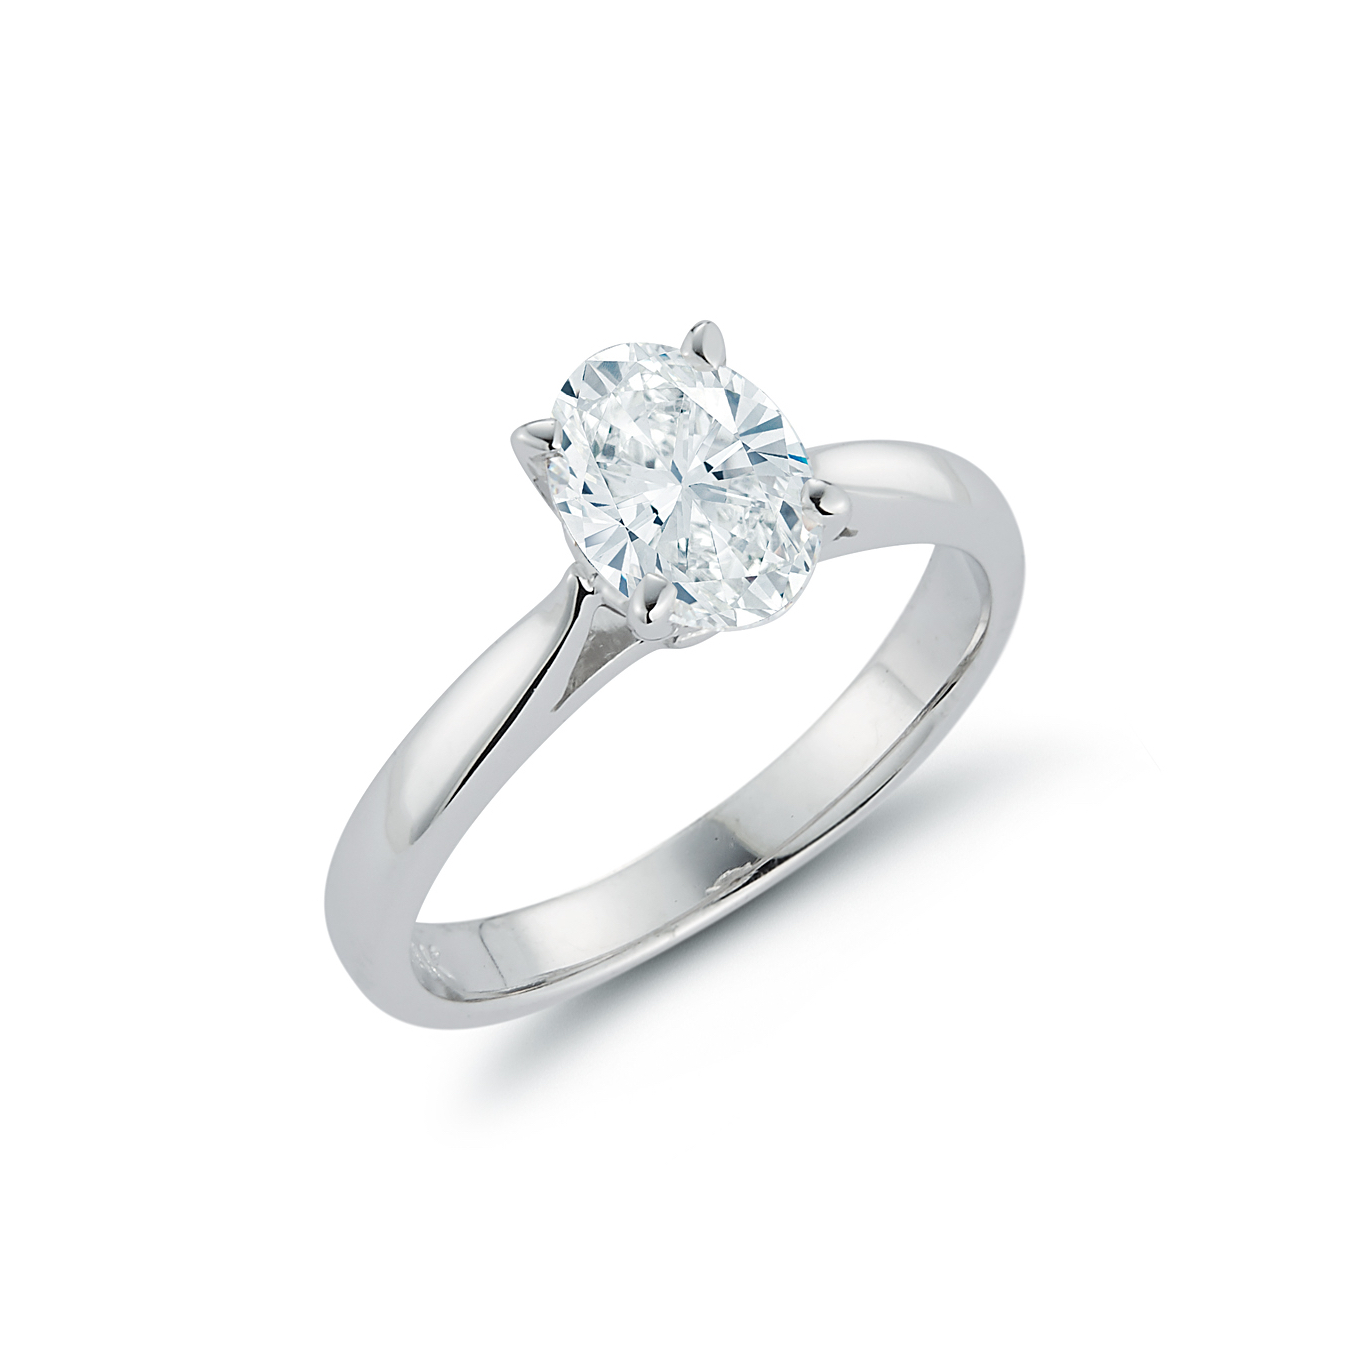 Engagement Rings Chicago: Oval Diamond Solitaire Engagement Ring